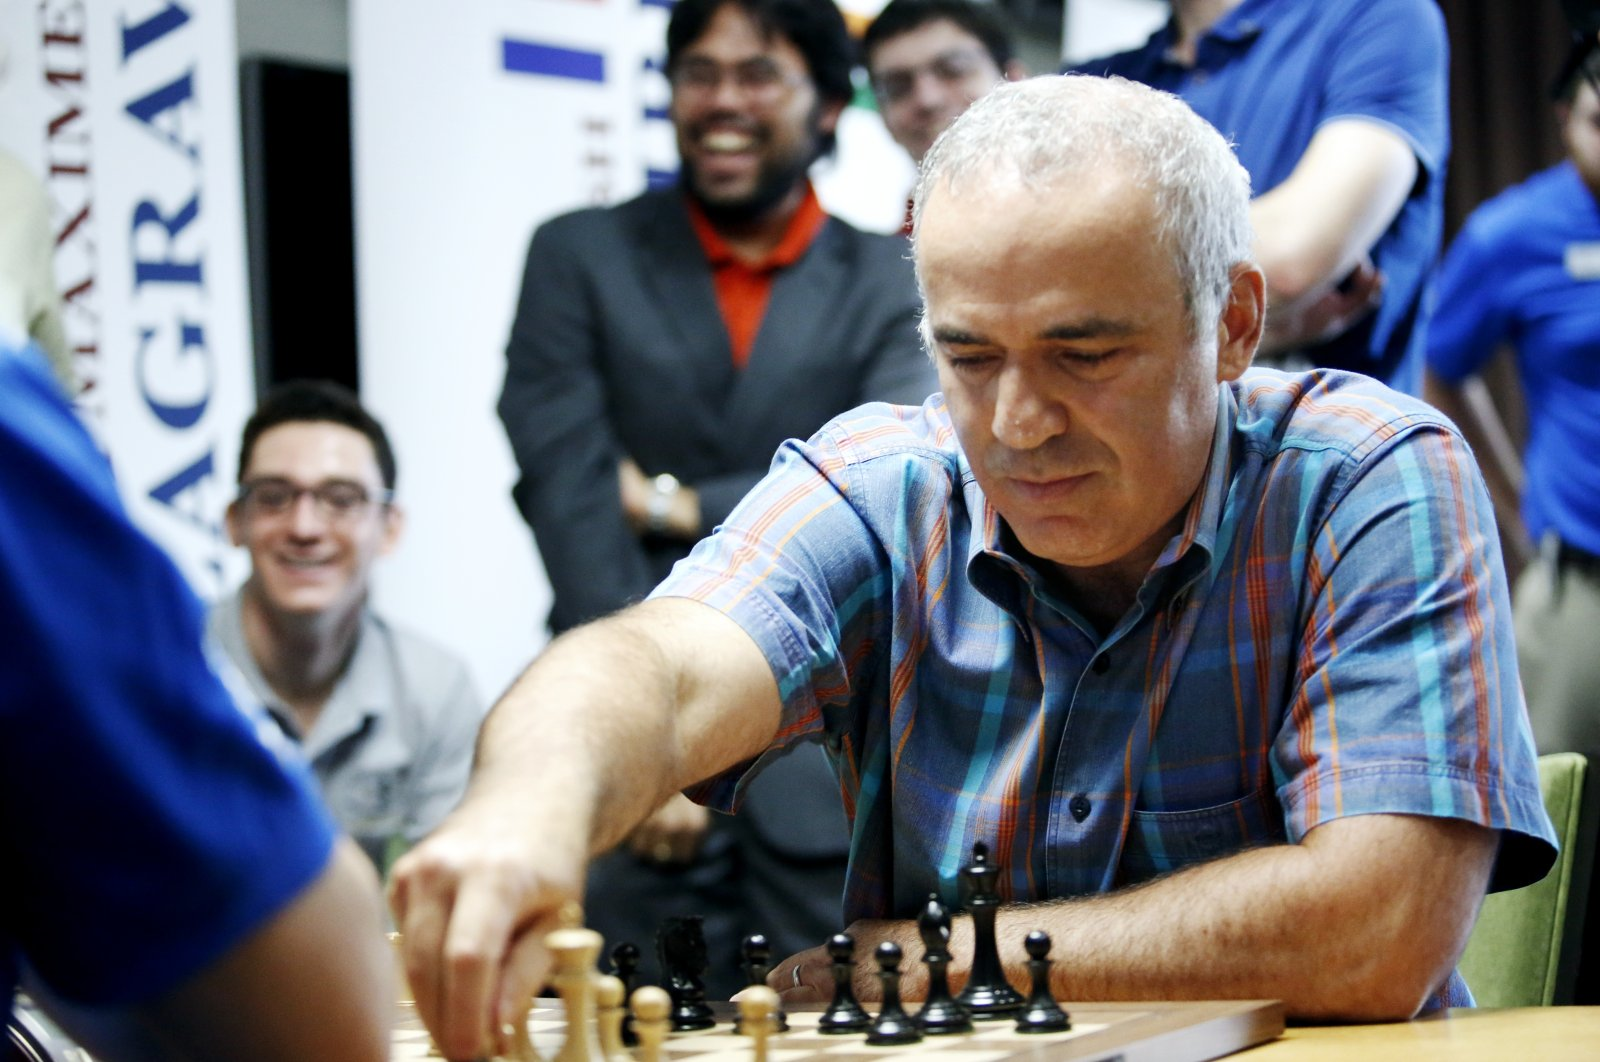 World chess legend Garry Kasparov makes a move during a series of rapid and blitz exhibition games called Ultimate Moves, St. Louis, Missouri, United States, Sept. 3, 2015. (AP Photo)